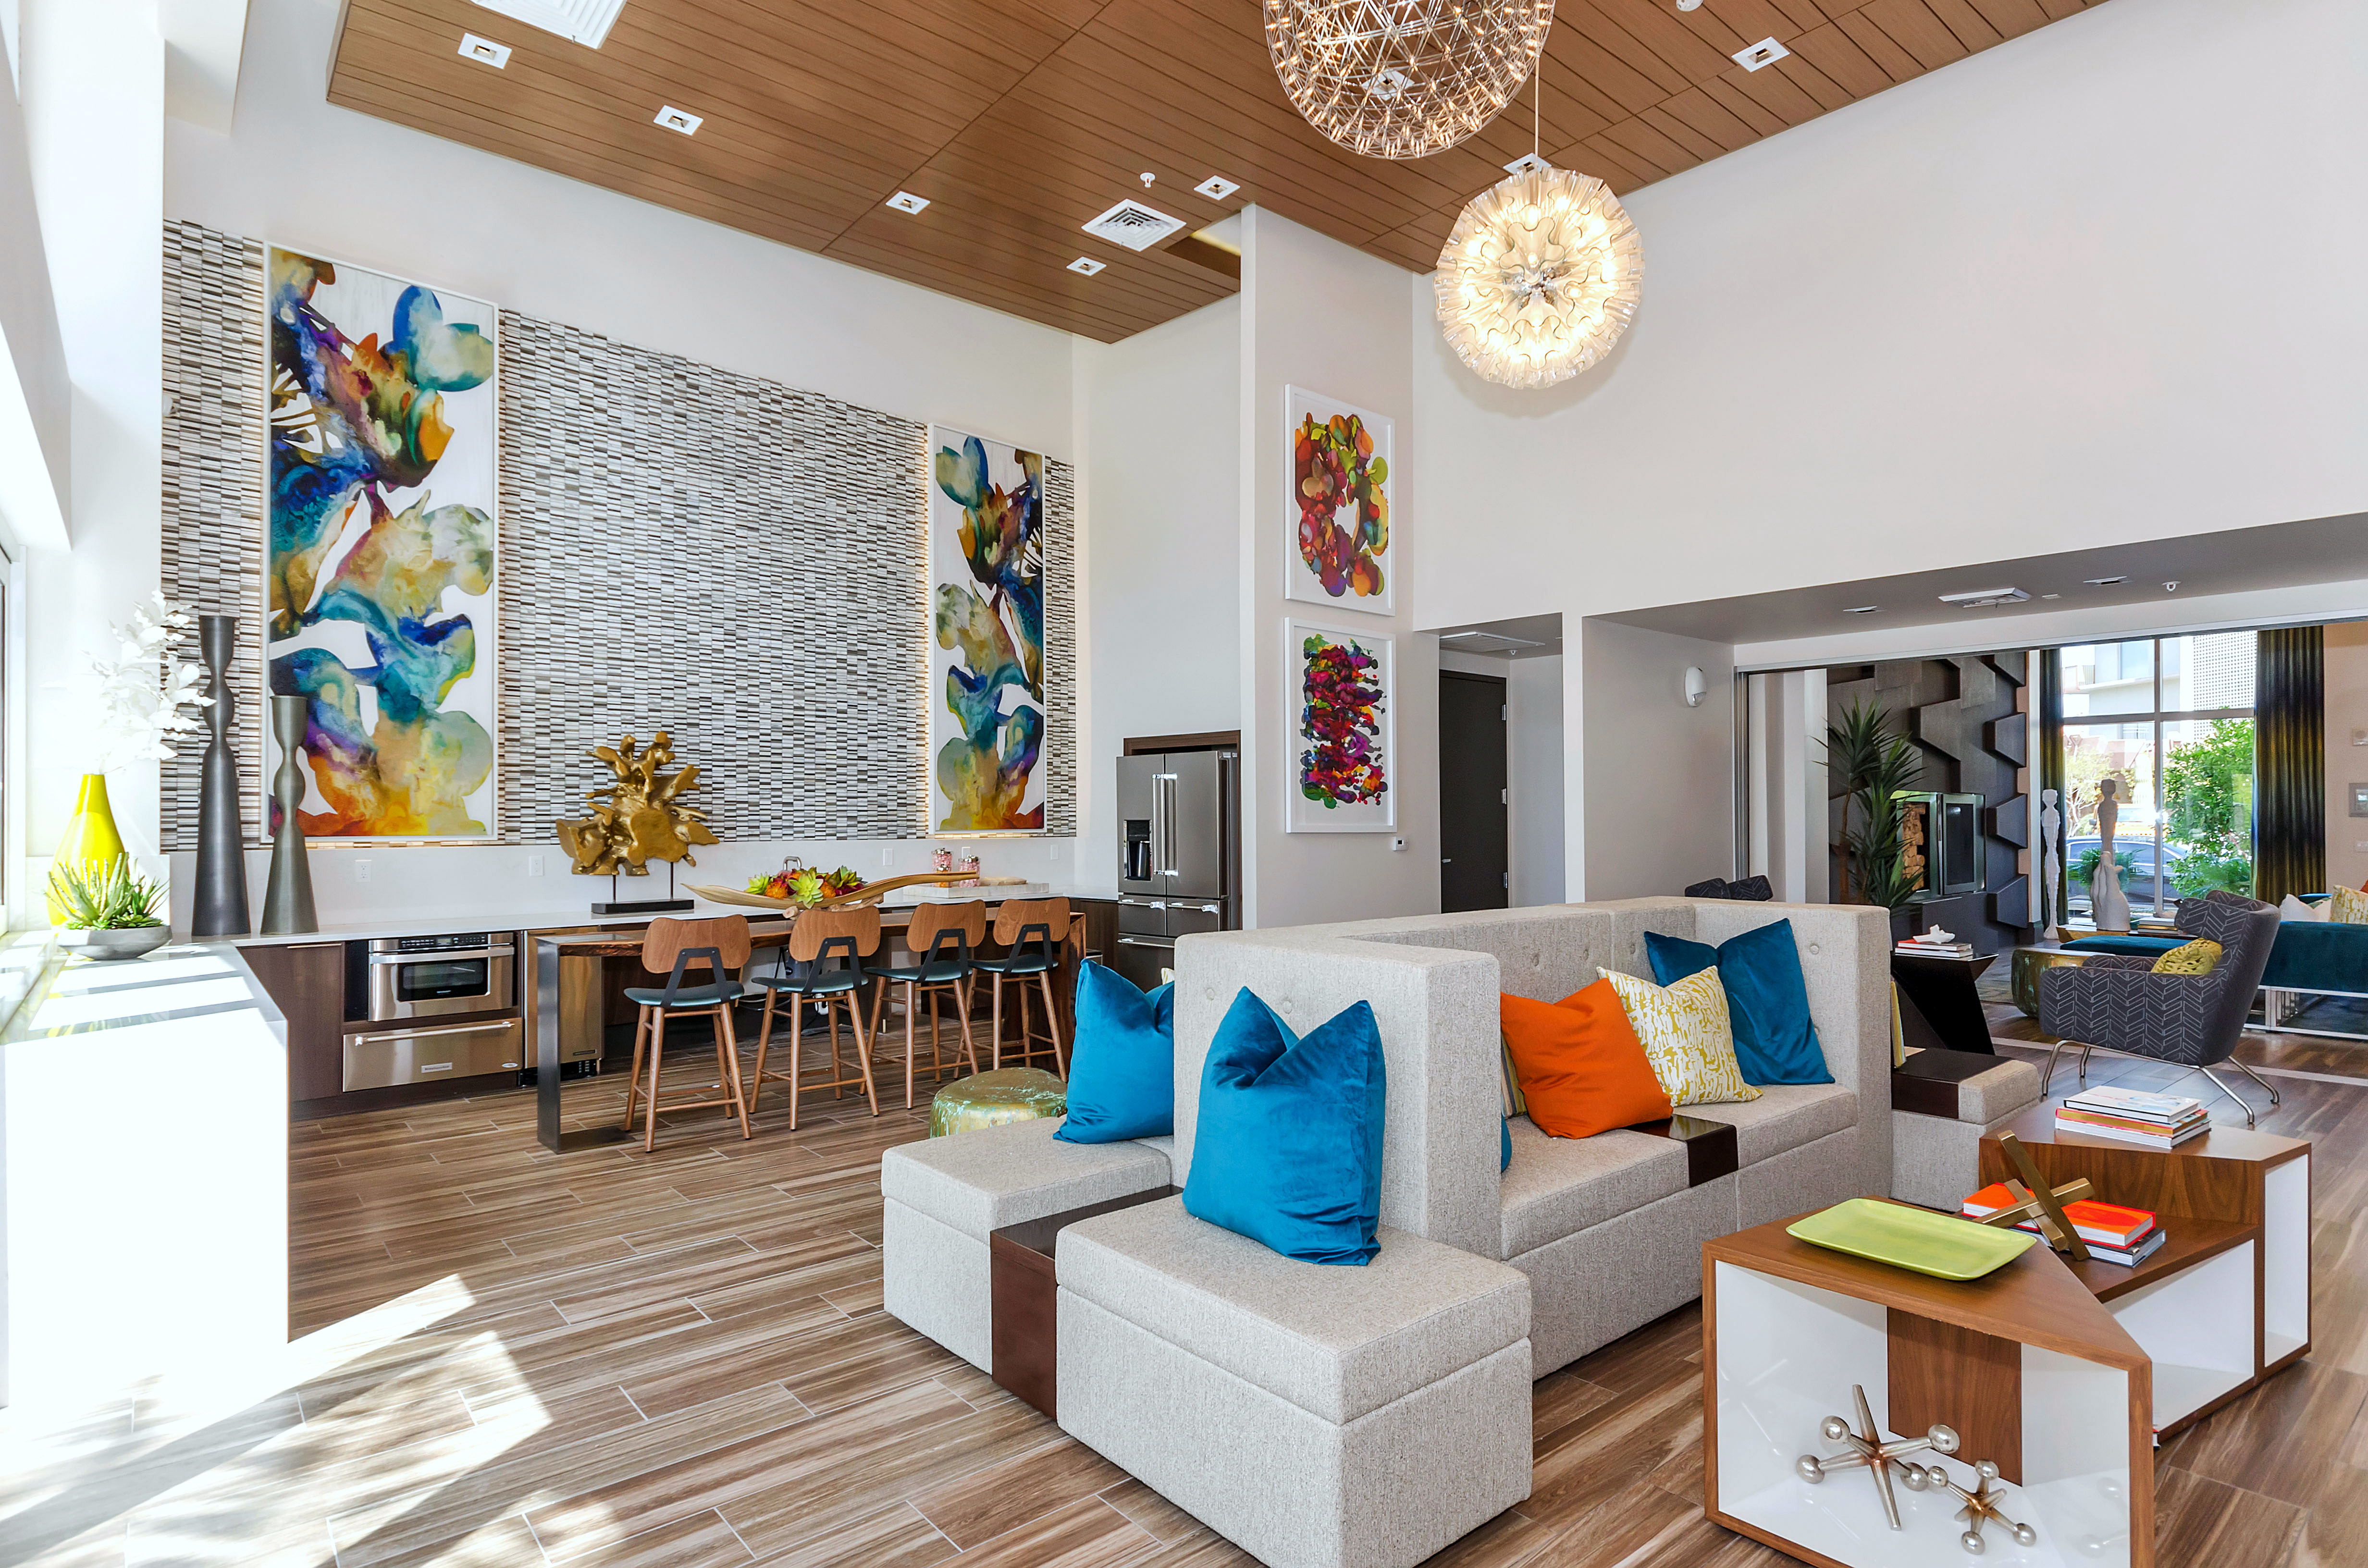 Greystar To Manage The Standard Apartments In Scottsdale